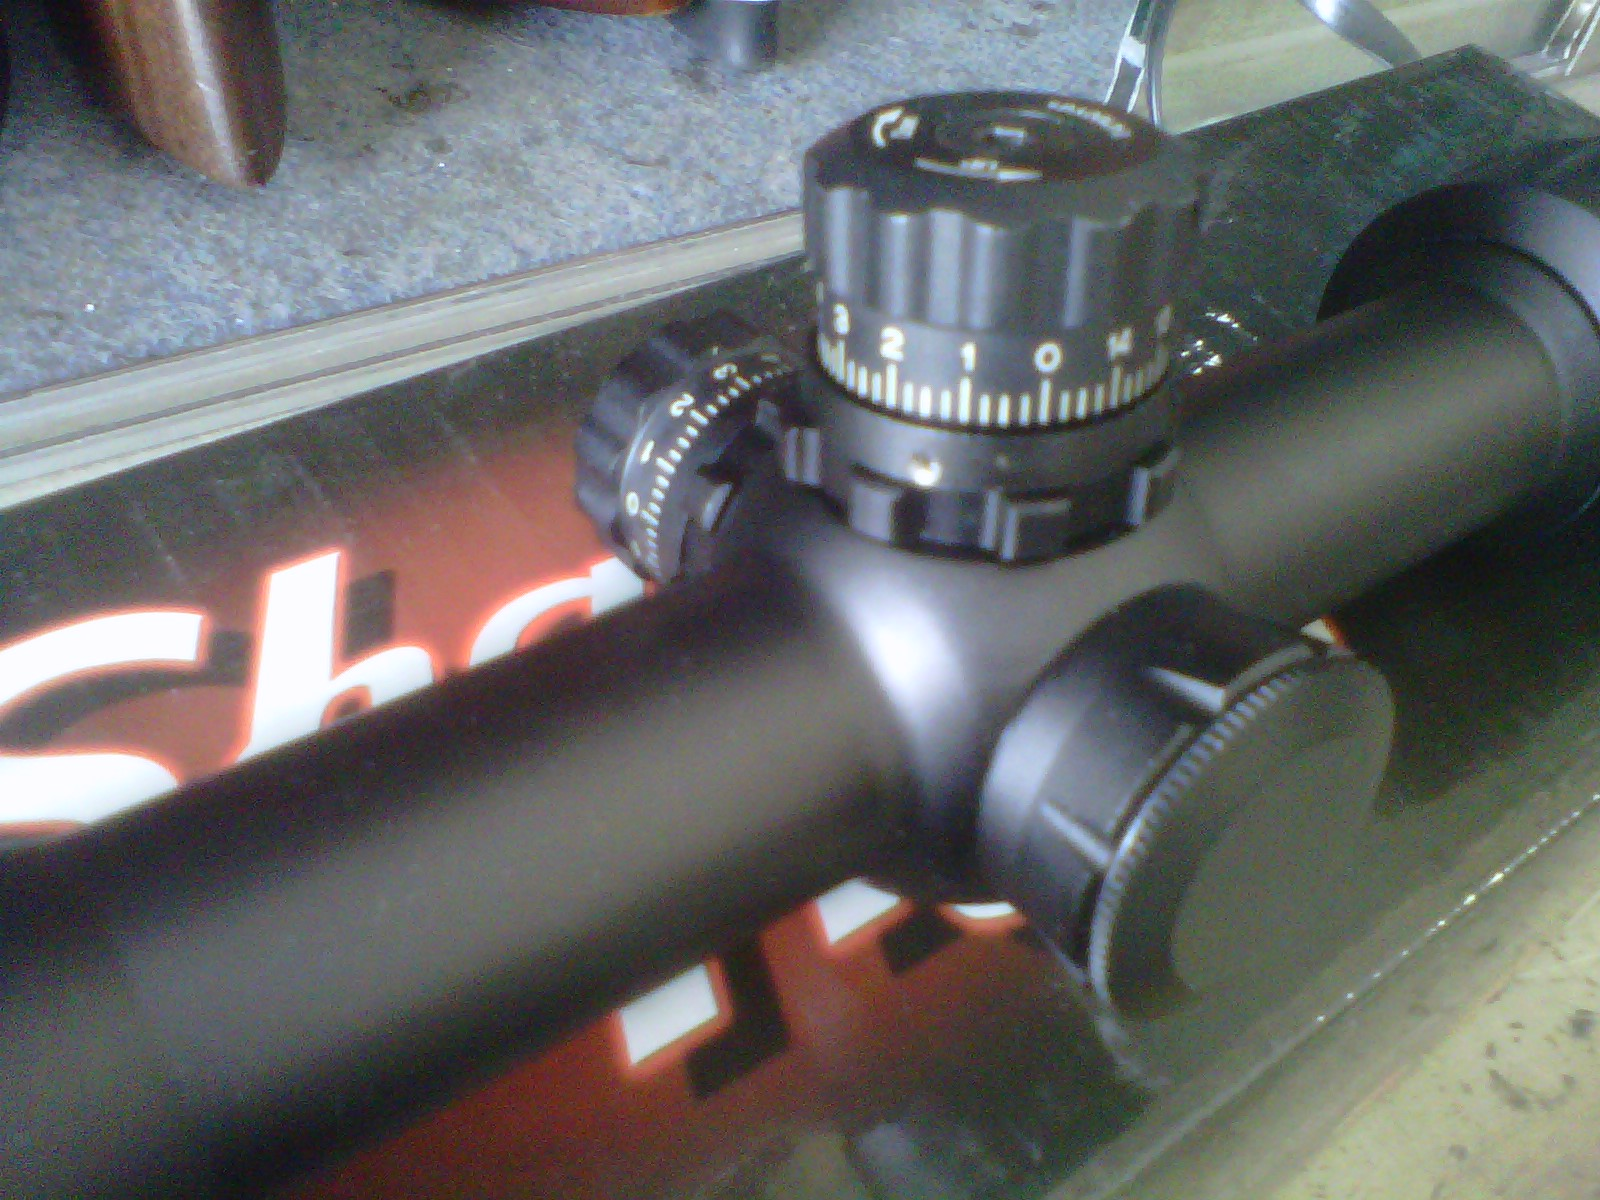 Guns and hobbies: telescope sharp tiger 3 9 x 42e with laser pointer